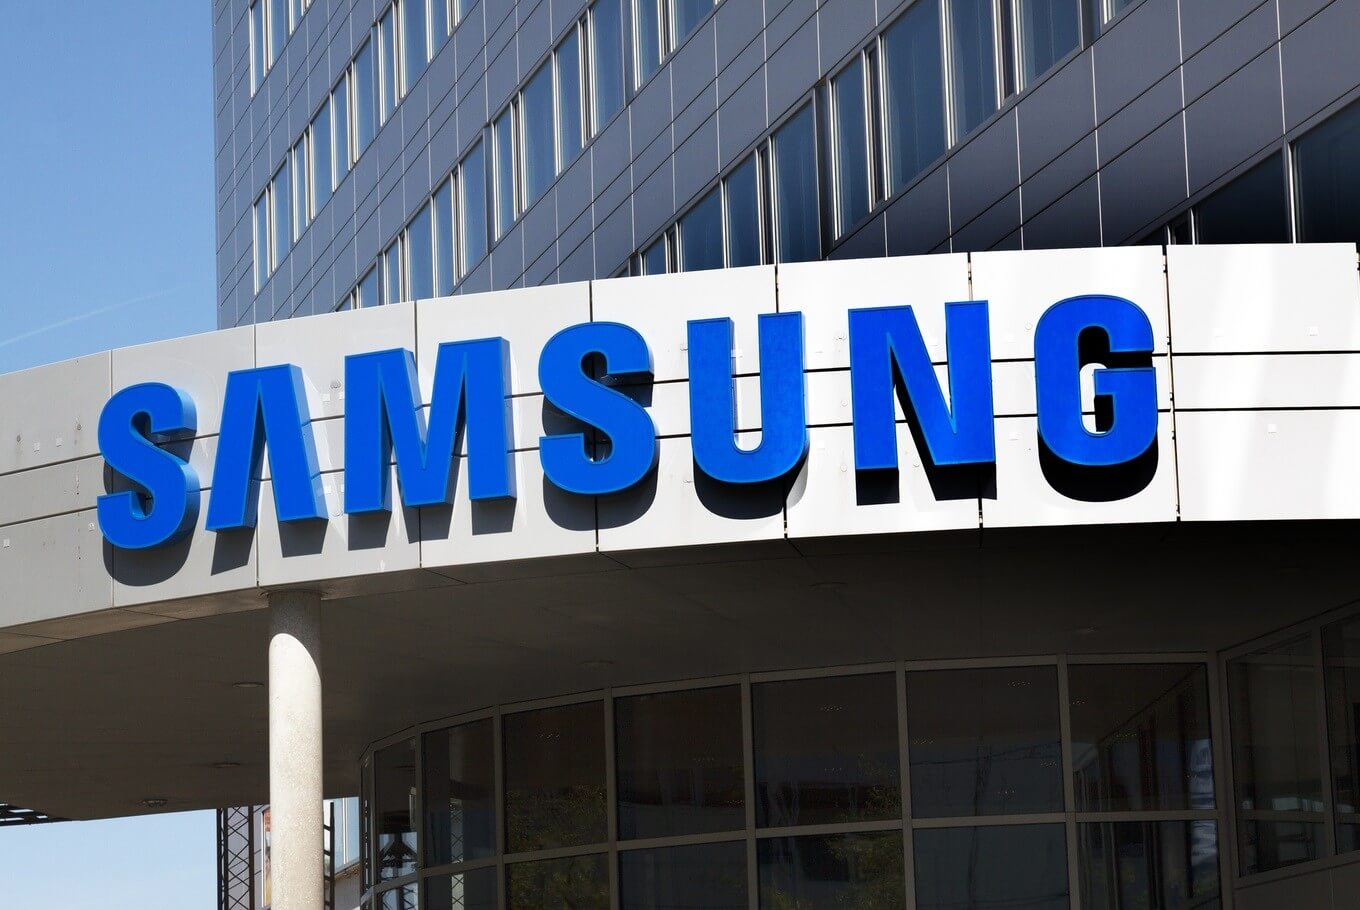 Samsung is throwing down $161 billion to expand and build